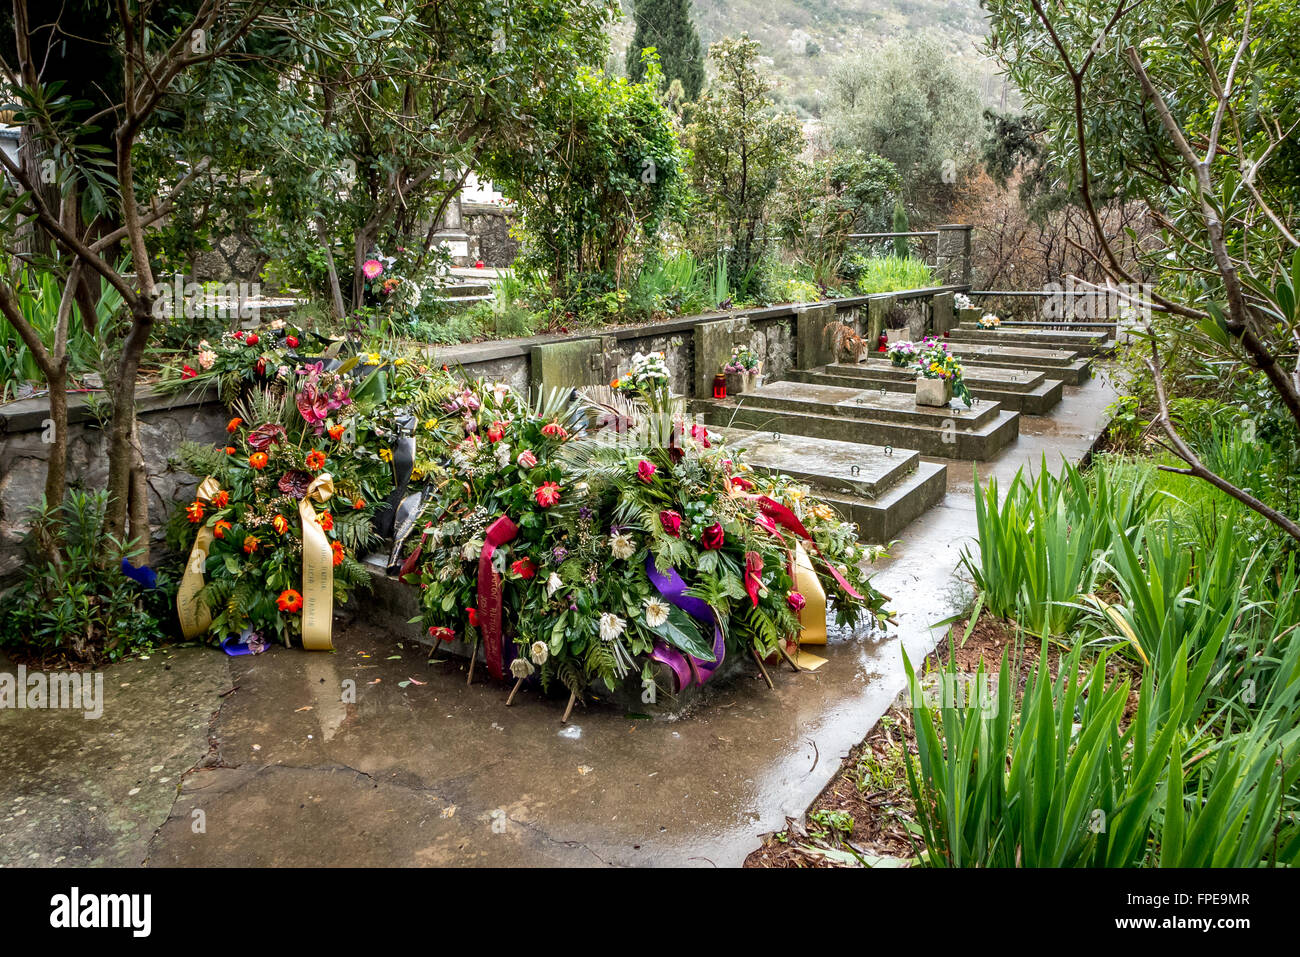 Decorated grave in the Croatian town of Sustjepan, near Dubrovnik. - Stock Image